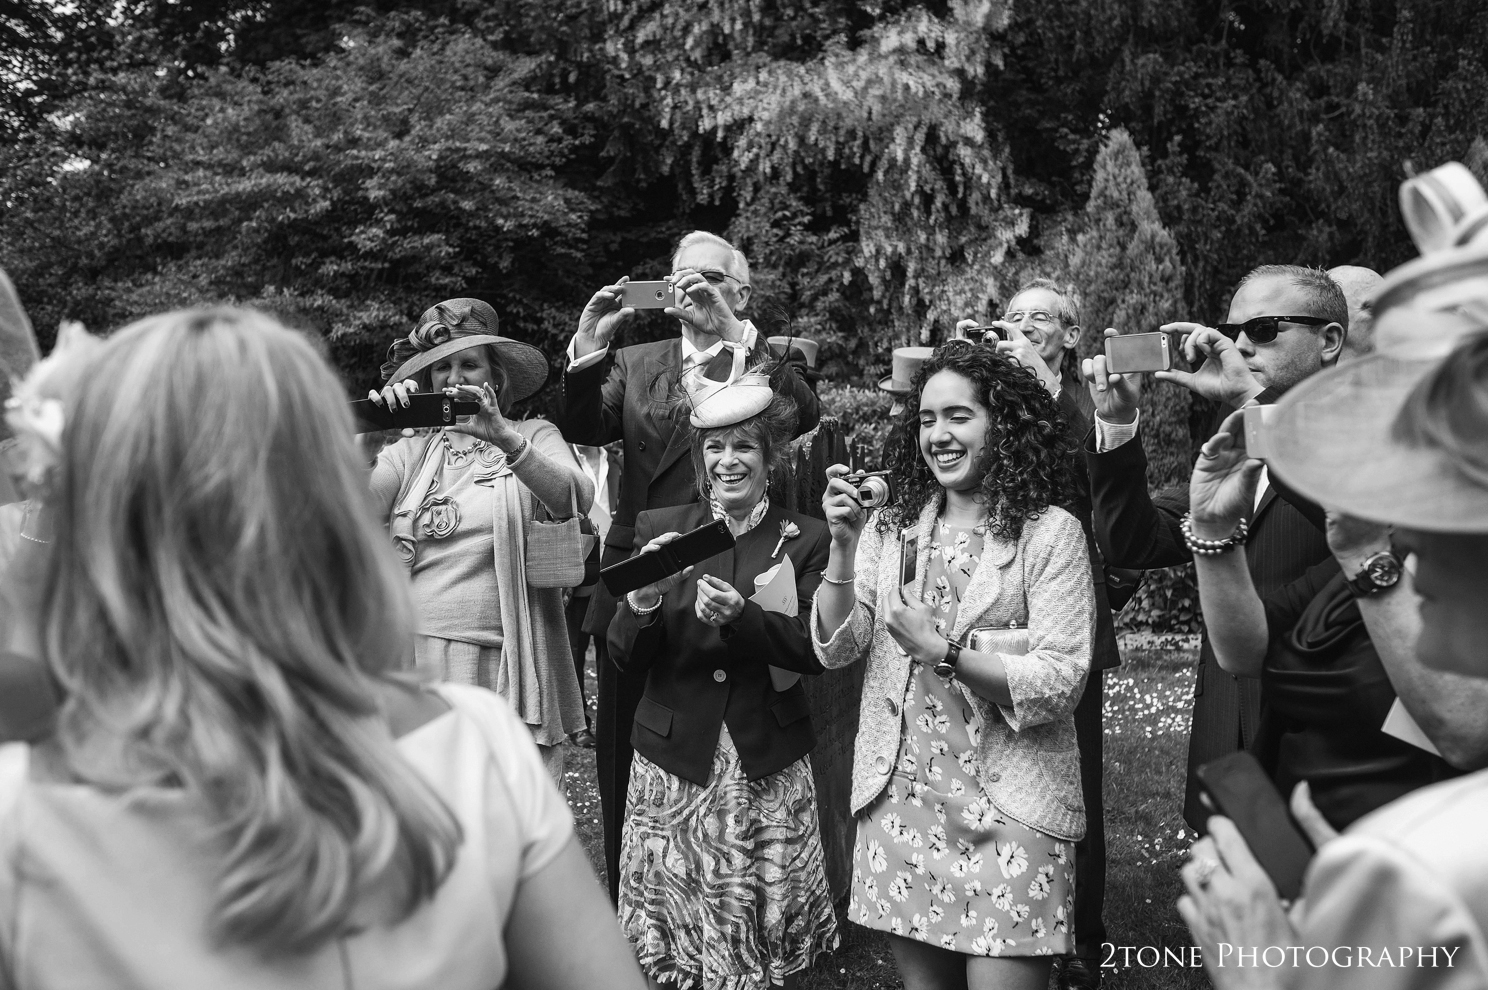 wedding guests with cameras at St Brandon's church, Brancepeth, Durham.  Wedding photography by www.2tonephotography.co.uk